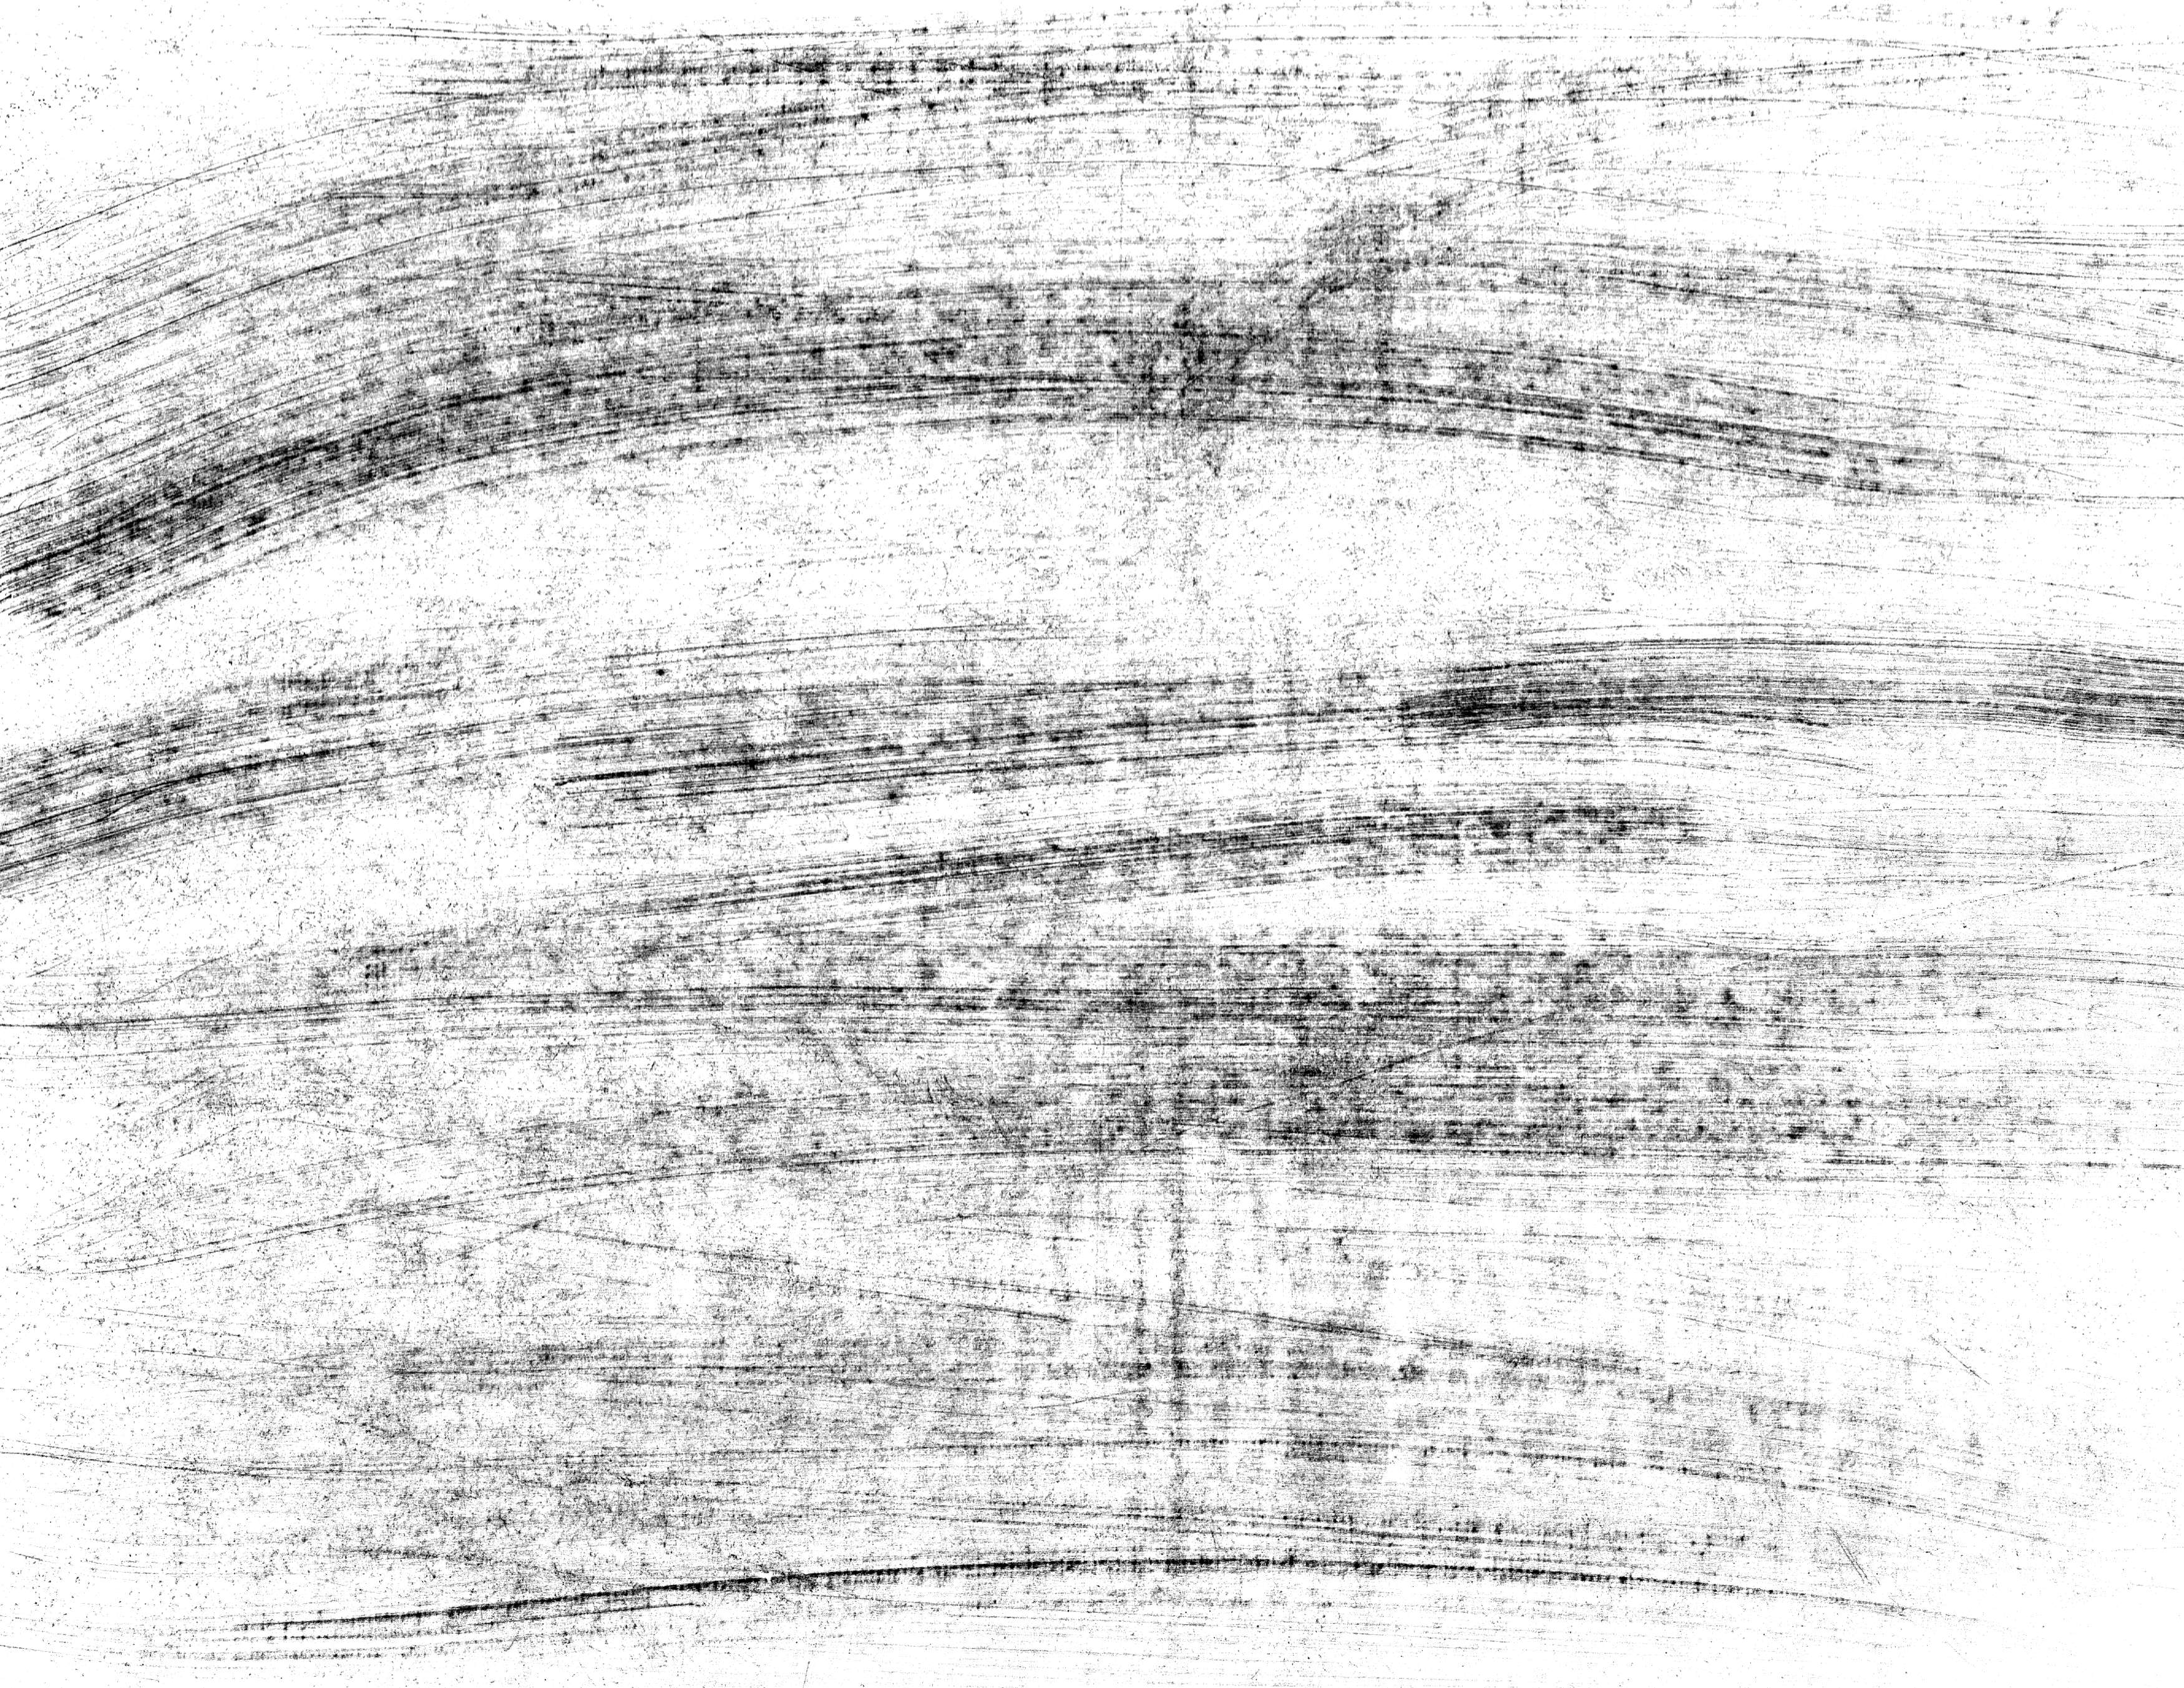 5 Scratched Grunge Texture Black and White (JPG) | OnlyGFX.com